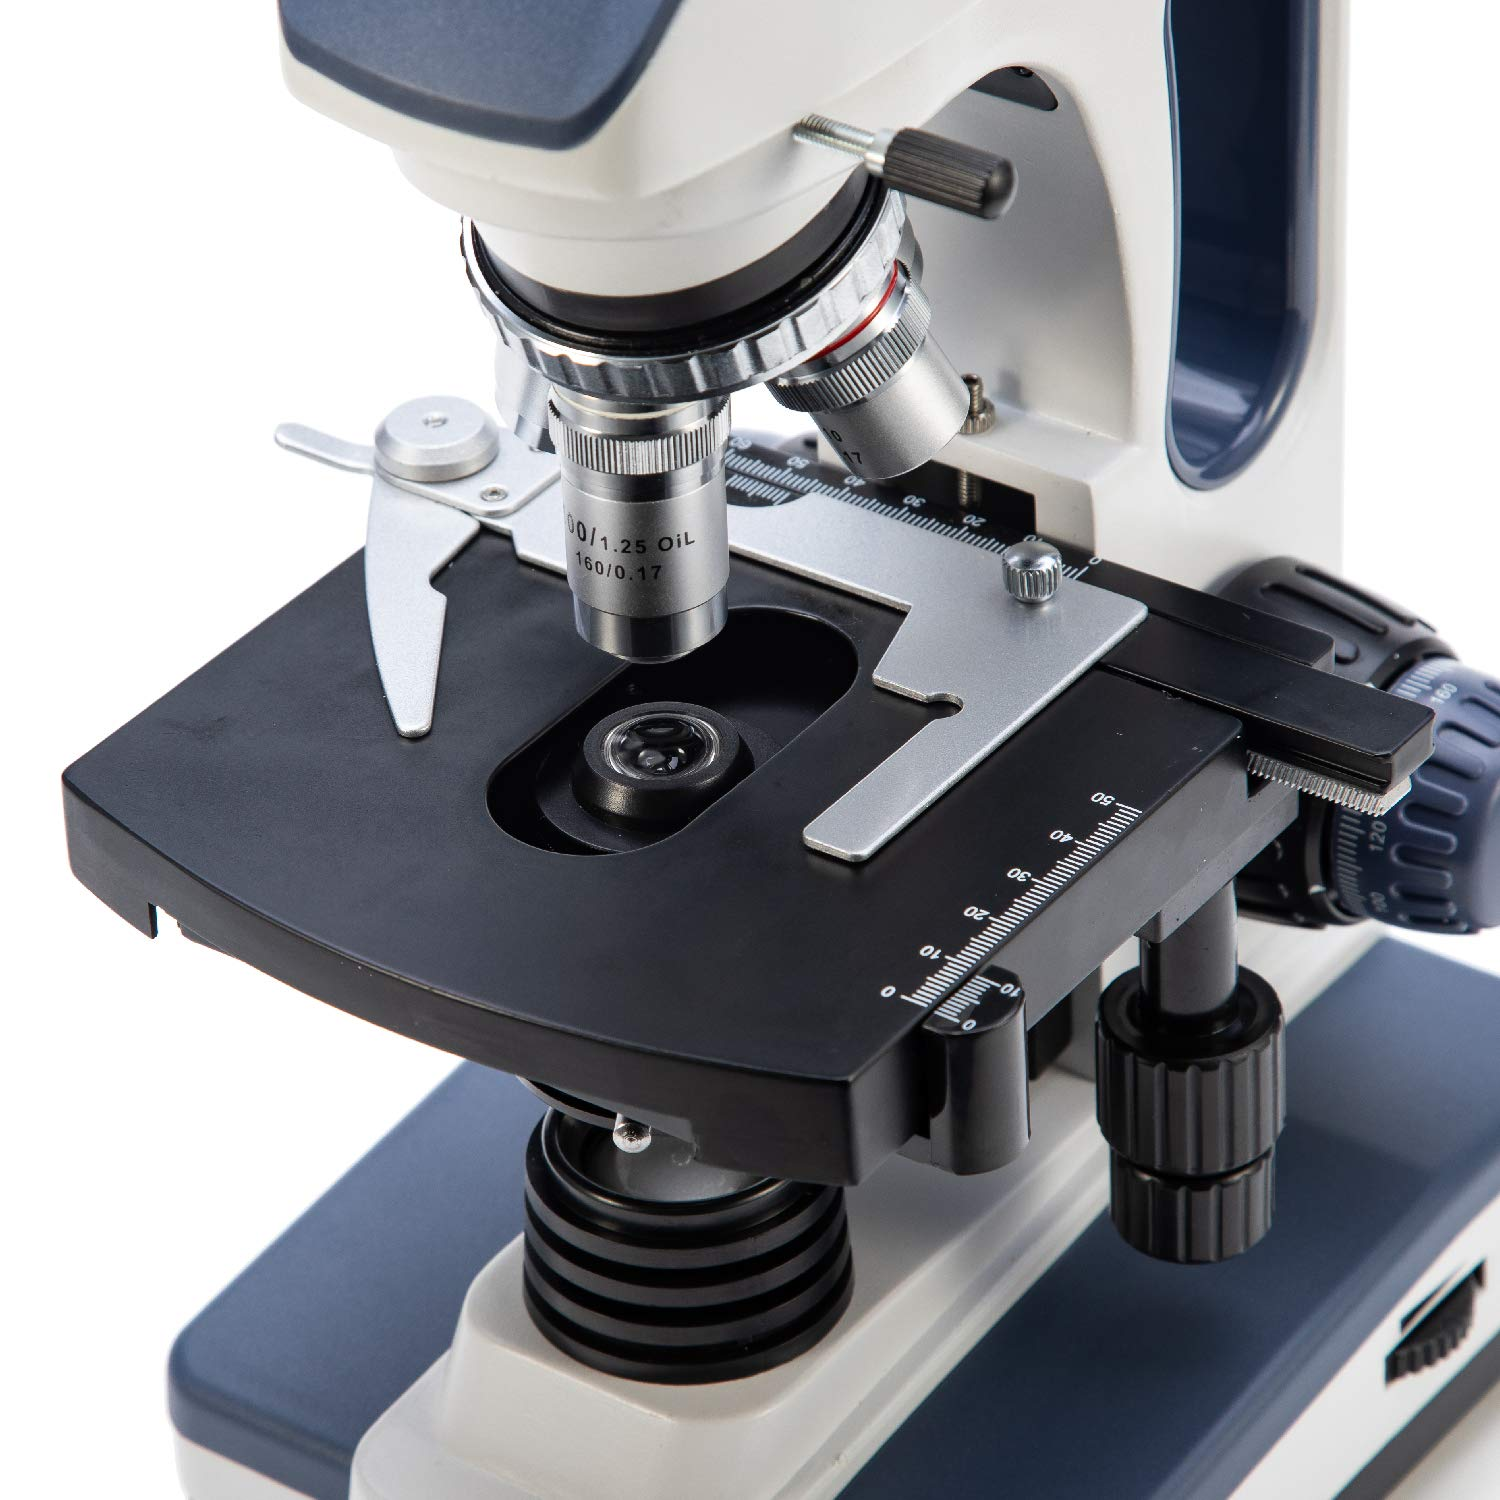 Swift SW350B 40X-2500X Magnification, Siedentopf Binocular Head, Research-Grade Compound Lab Microscope with Wide-Field 10X and 25X Eyepieces, Mechanical Stage, Abbe Condenser by SWIFT (Image #9)